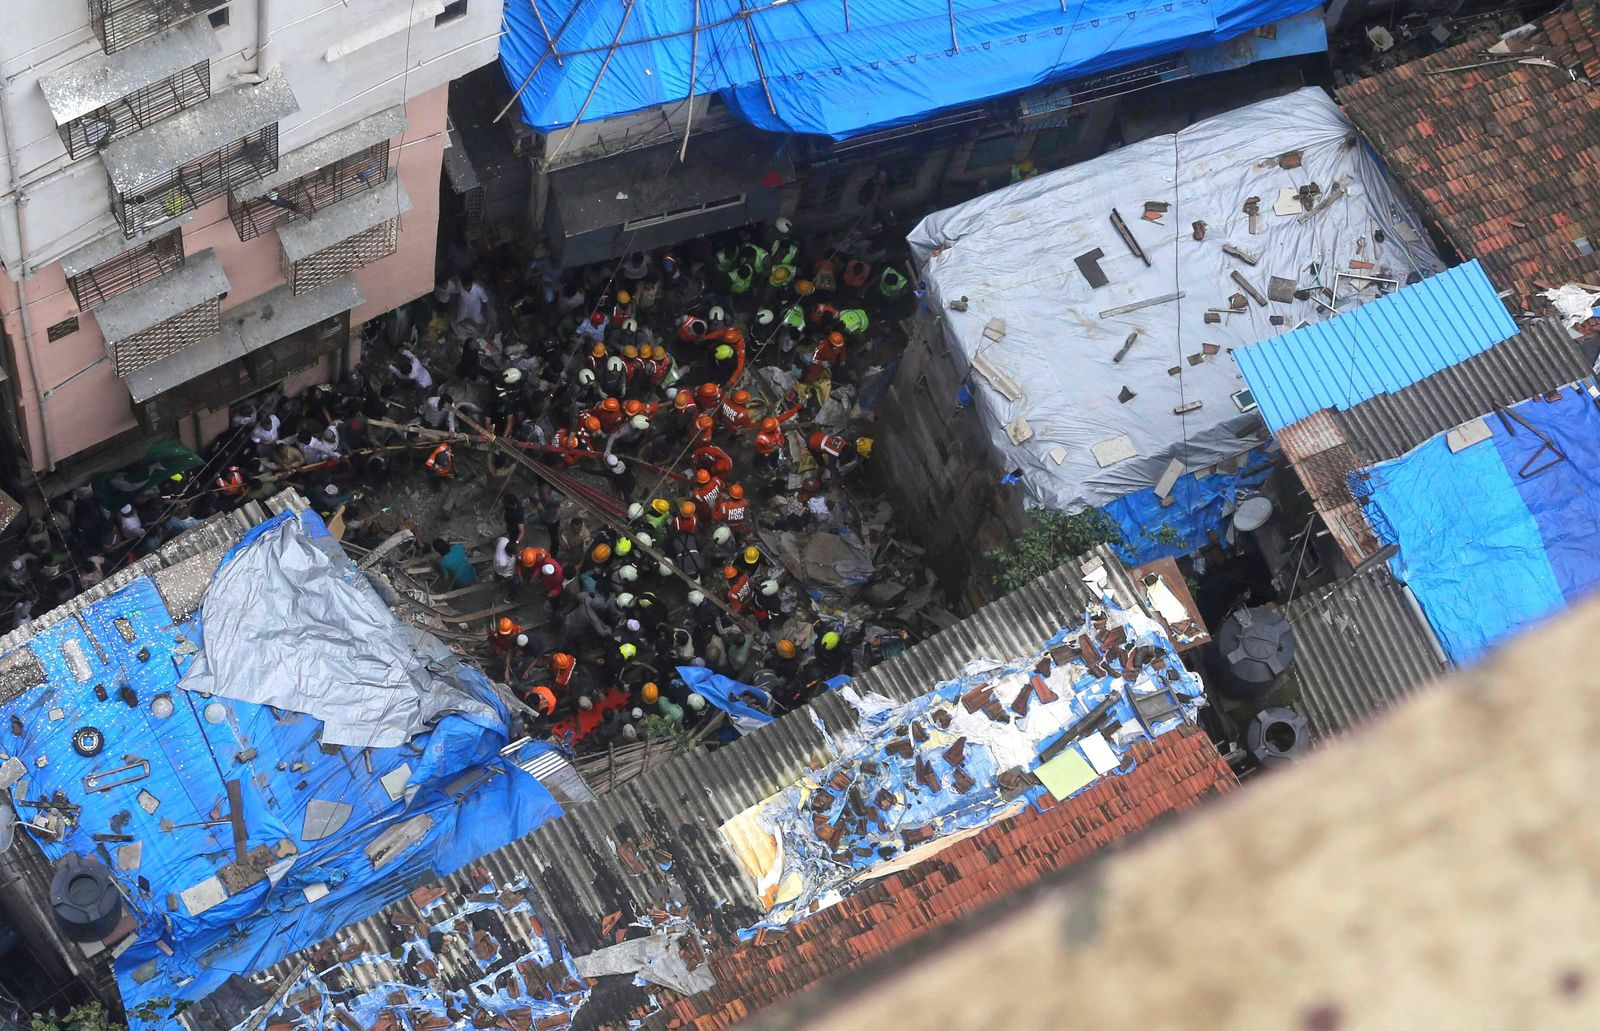 Rescuers work at the site of a building that collapsed in Mumbai, India, Tuesday, July 16, 2019. (AP Photo/Rajanish Kakade)